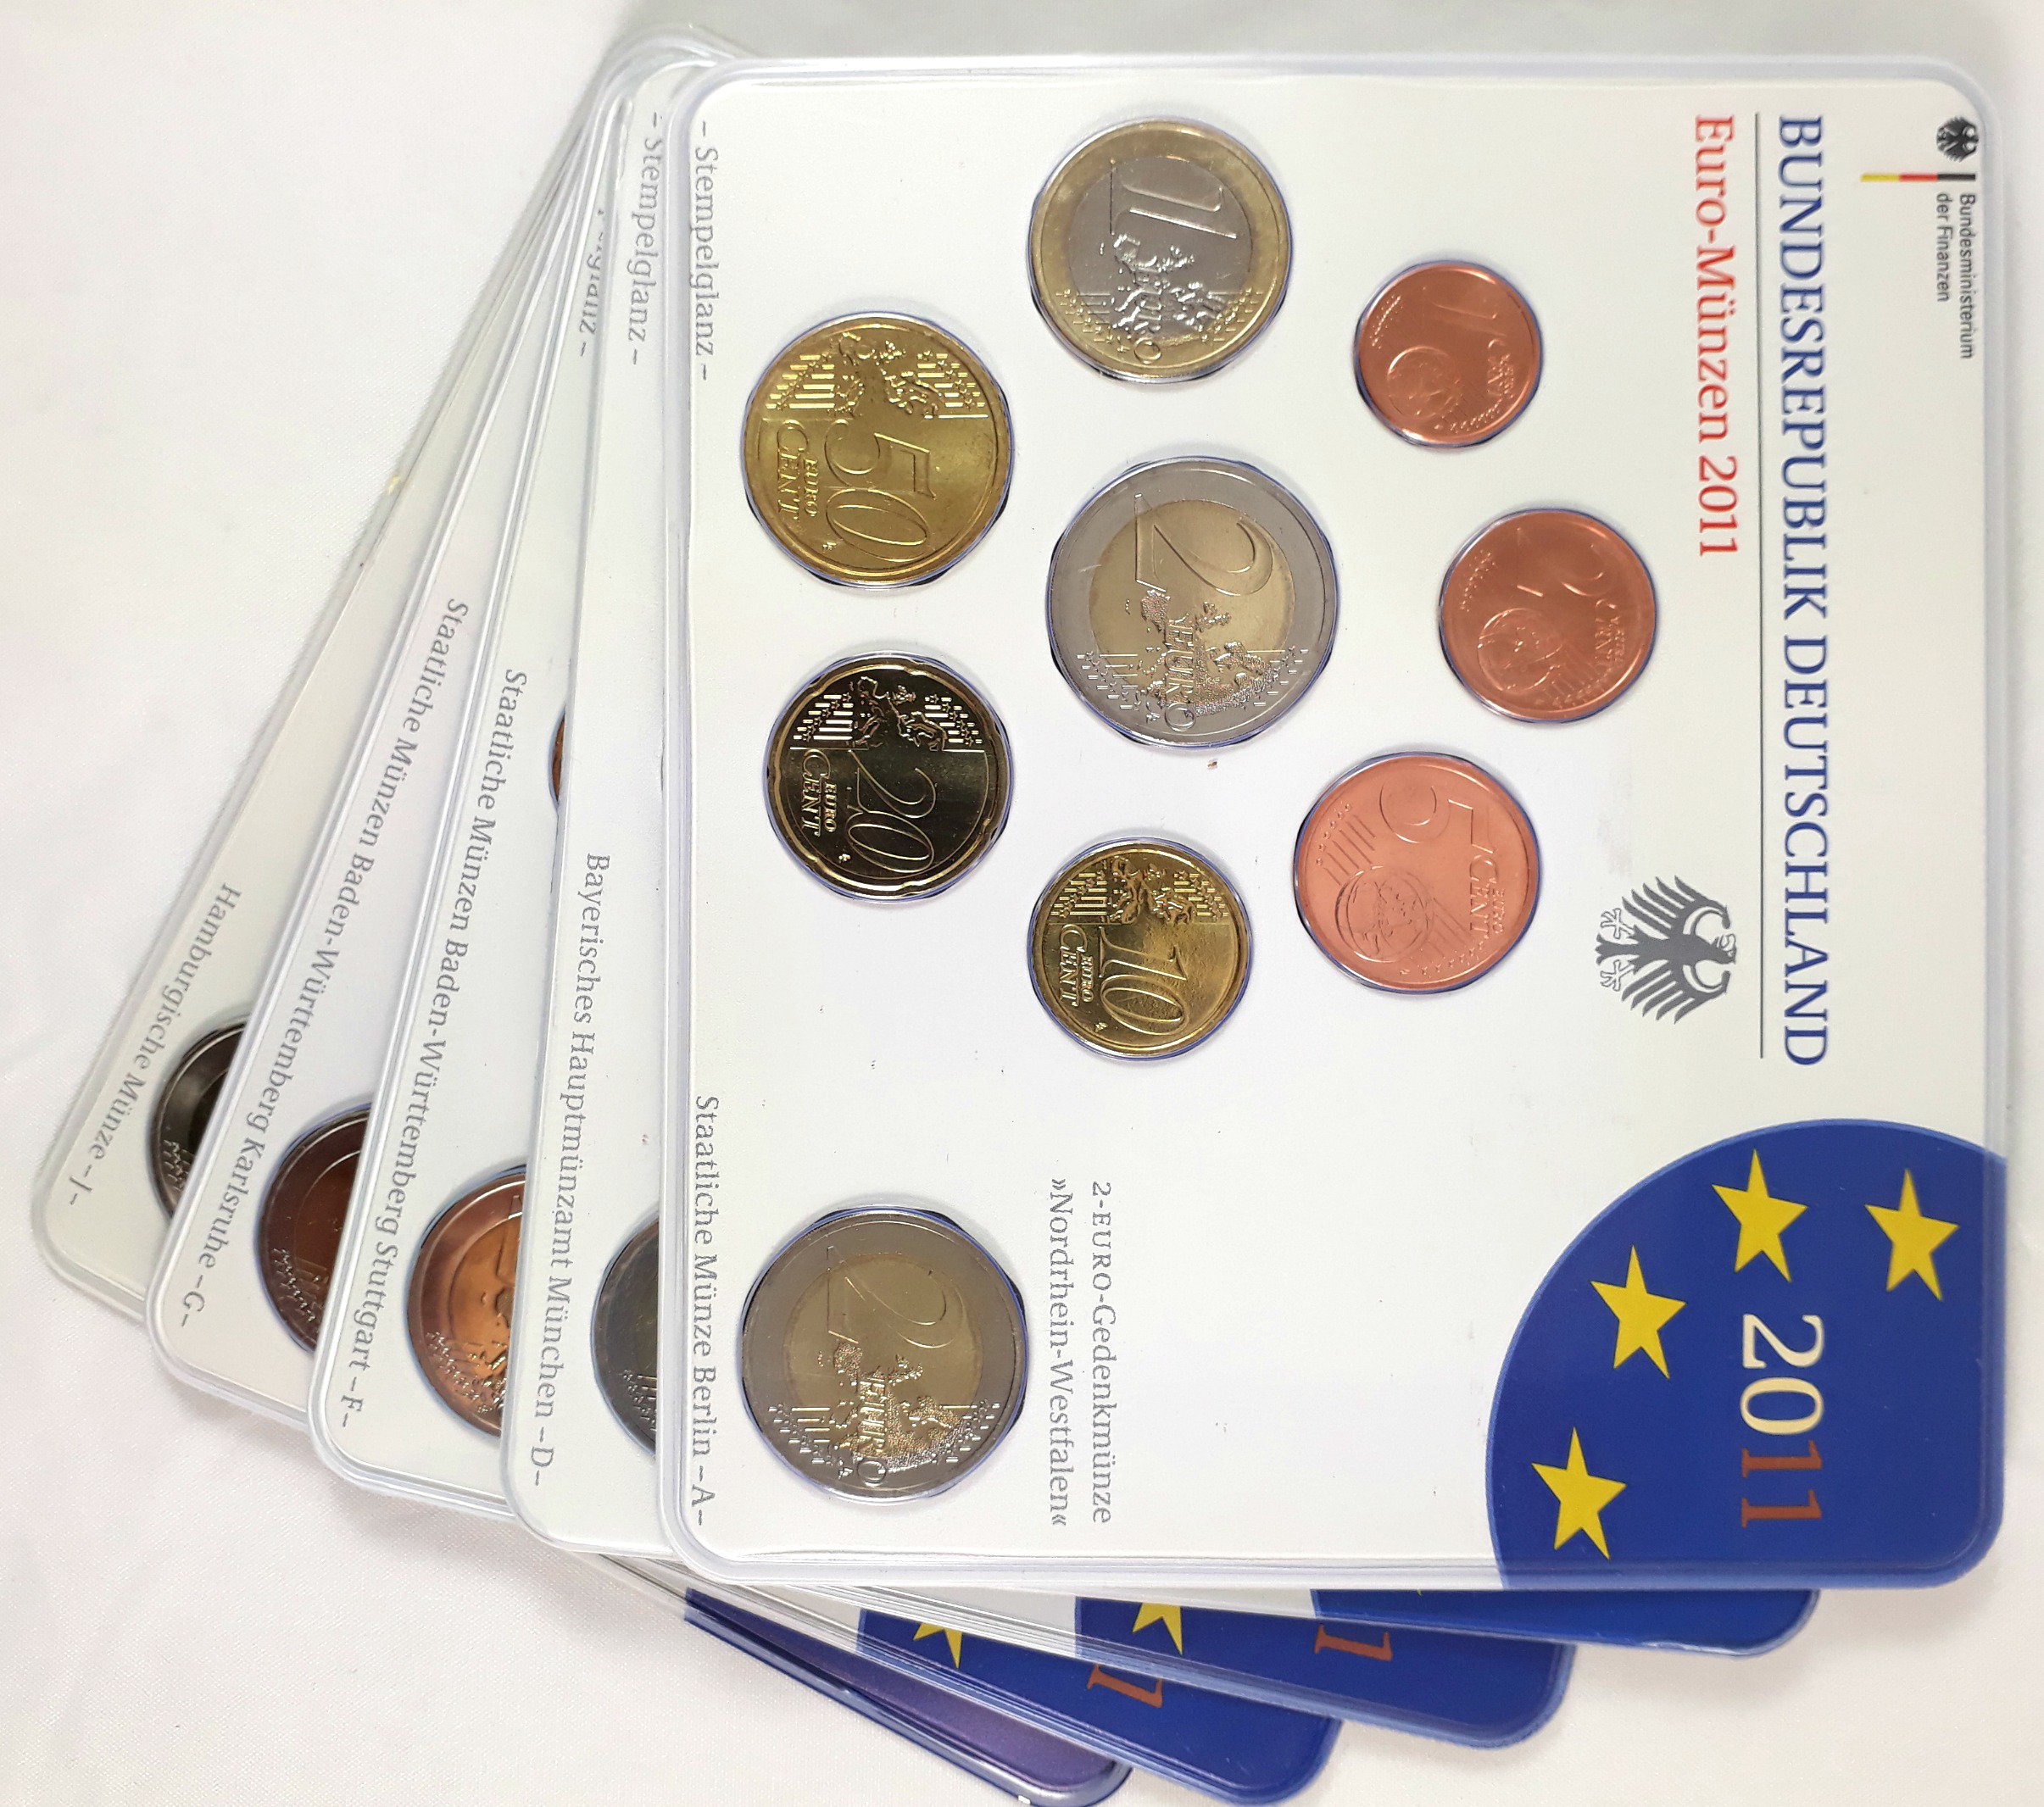 Germany Federal Republic Complete Annual 9 Eurocoin Set 2011